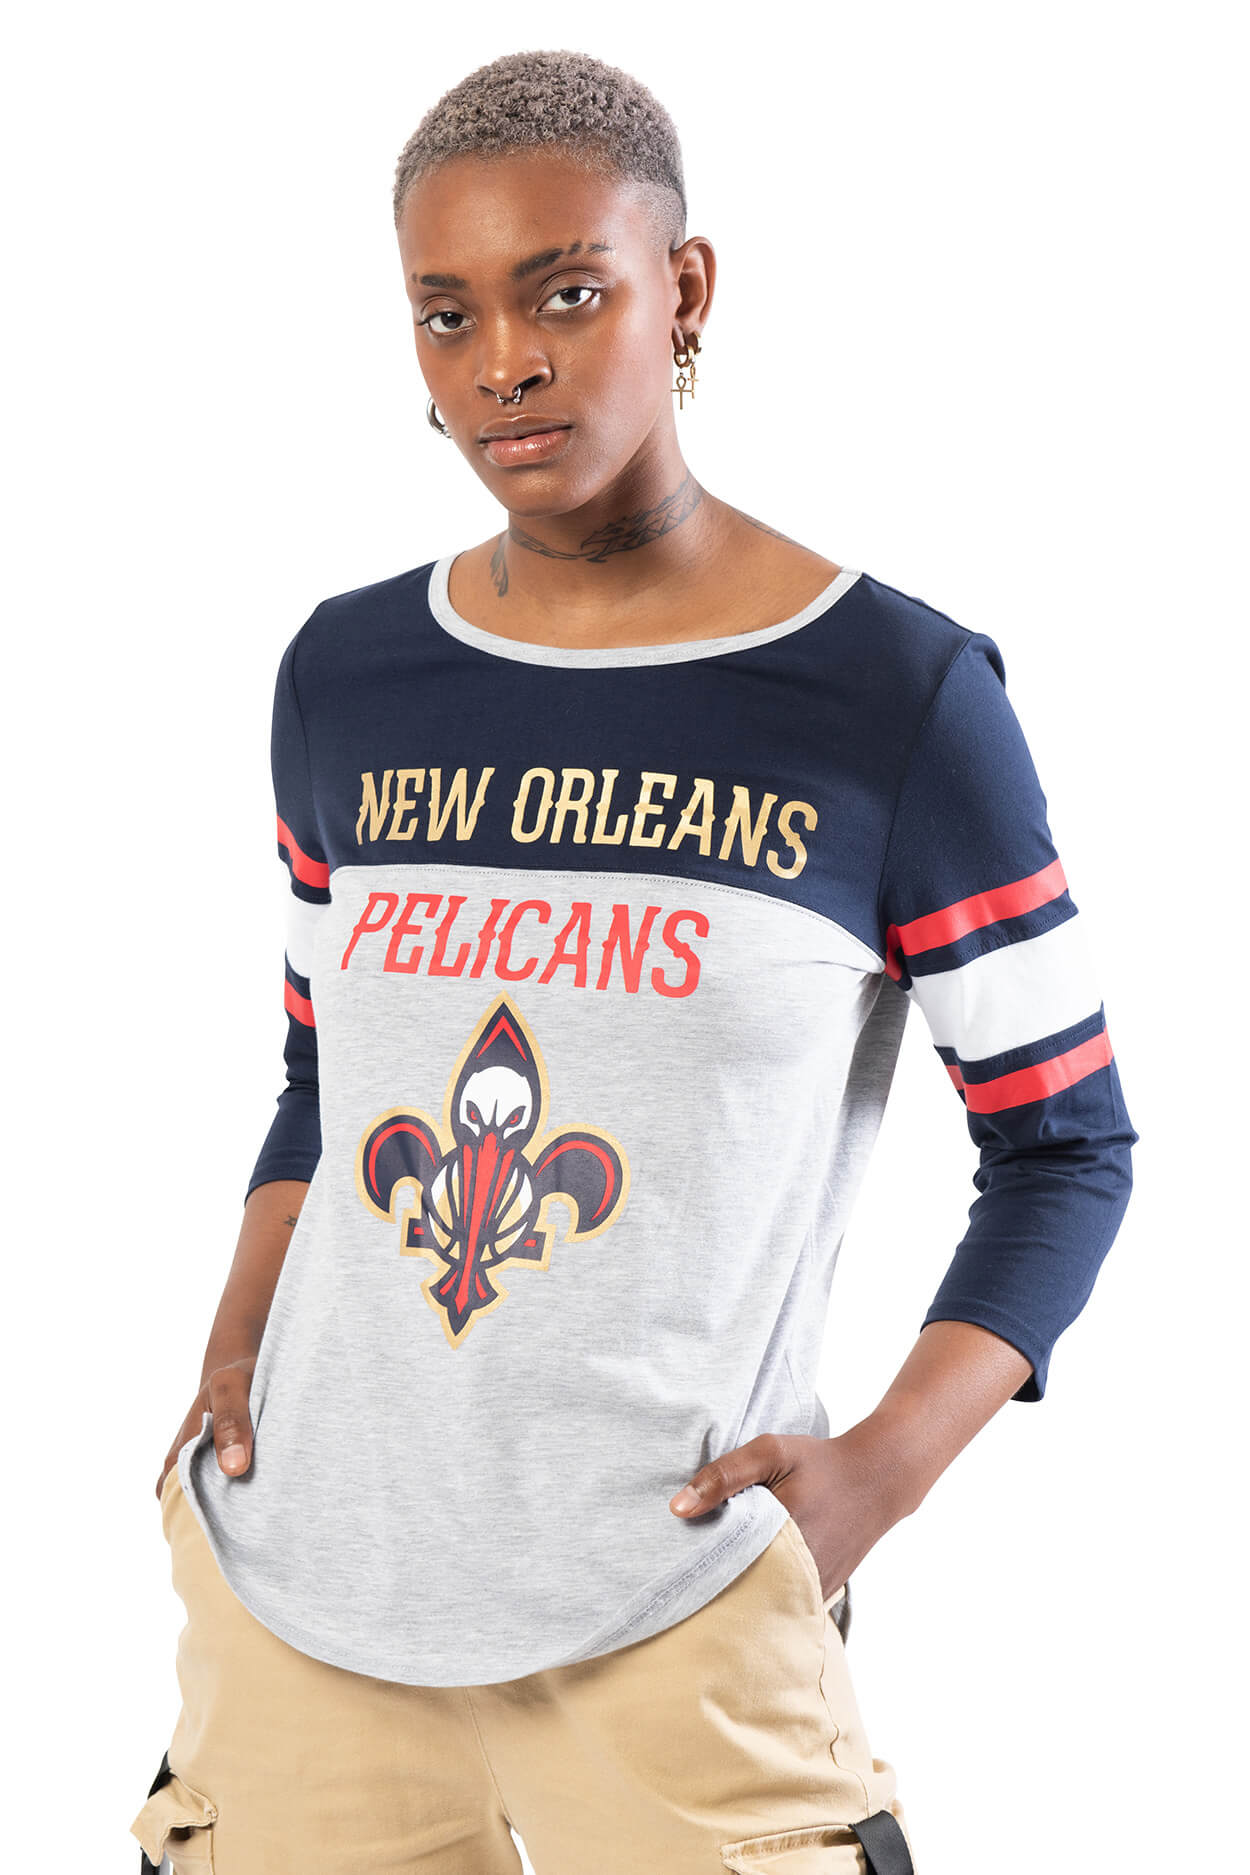 NBA New Orleans Pelicans Women's Baseball Tee|New Orleans Pelicans